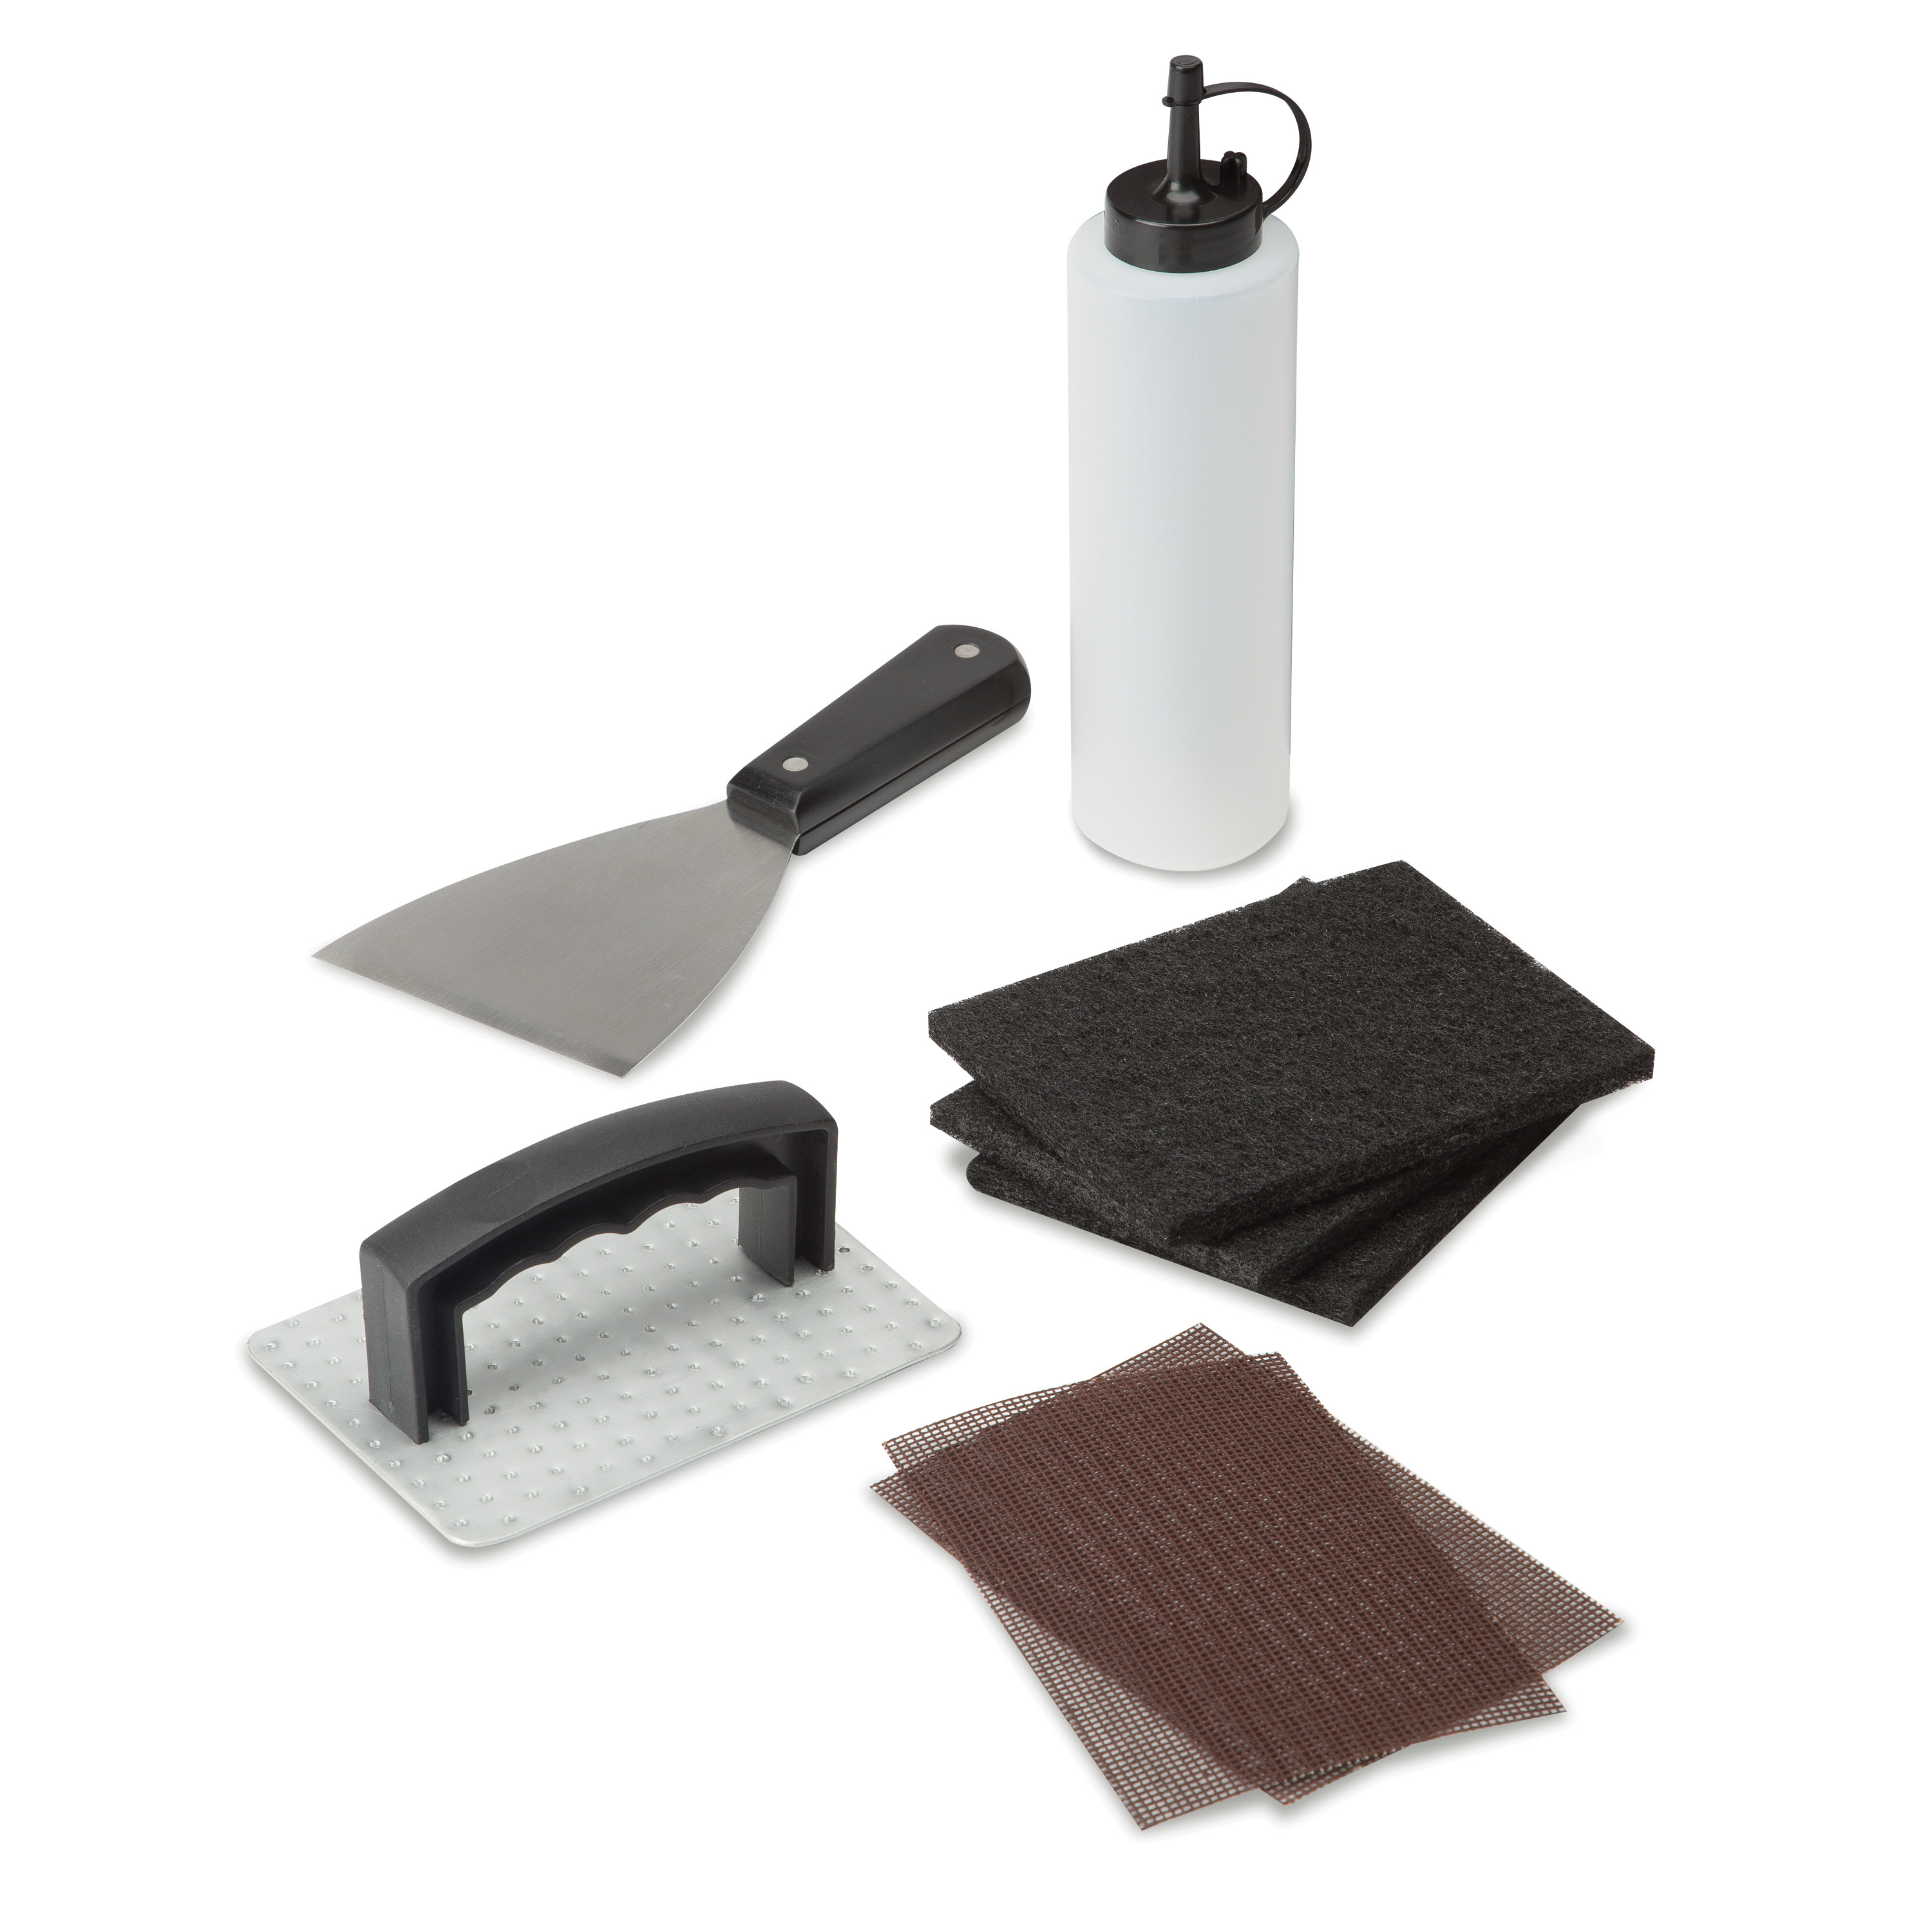 Cuisinart griddle cleaning kit